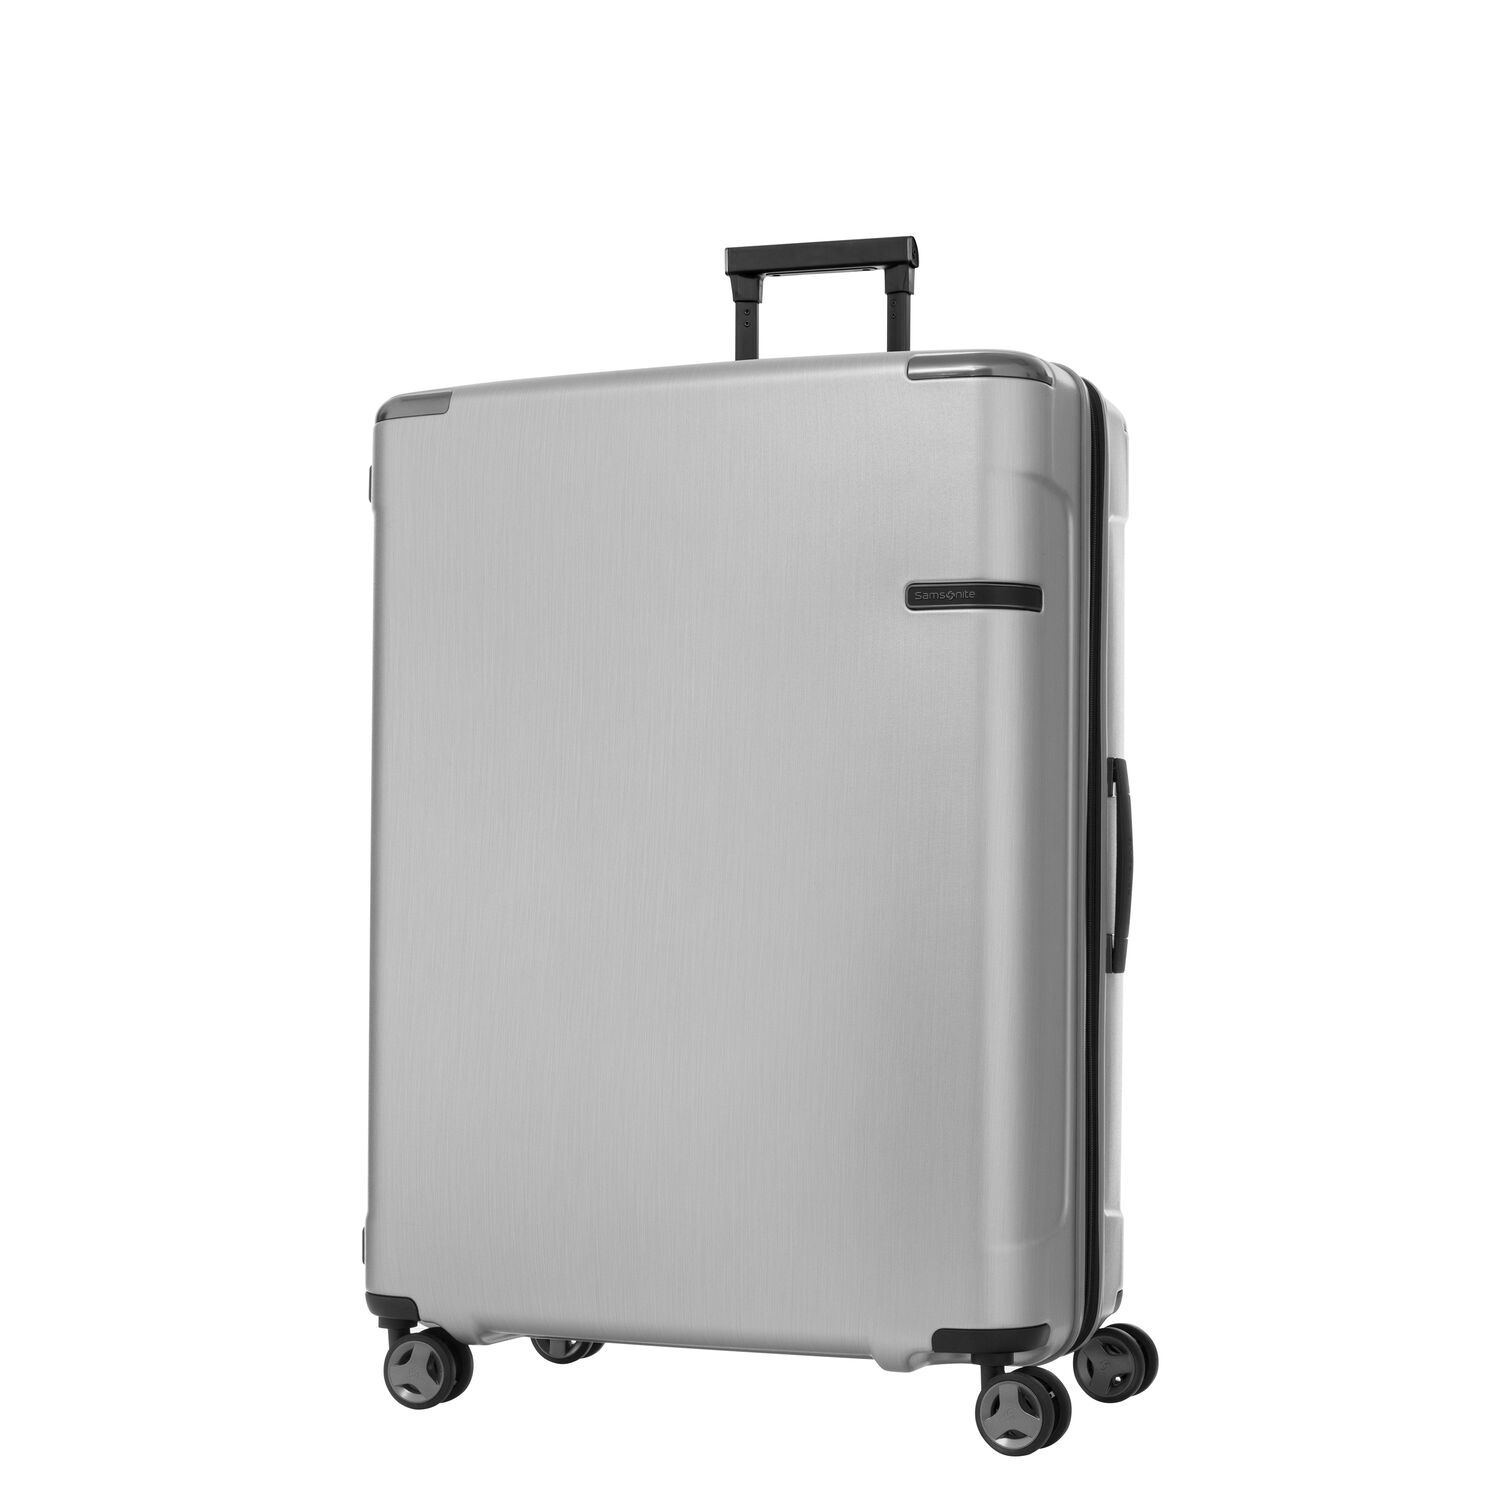 Samsonite Evoa Spinner Large in the color Brushed Silver.